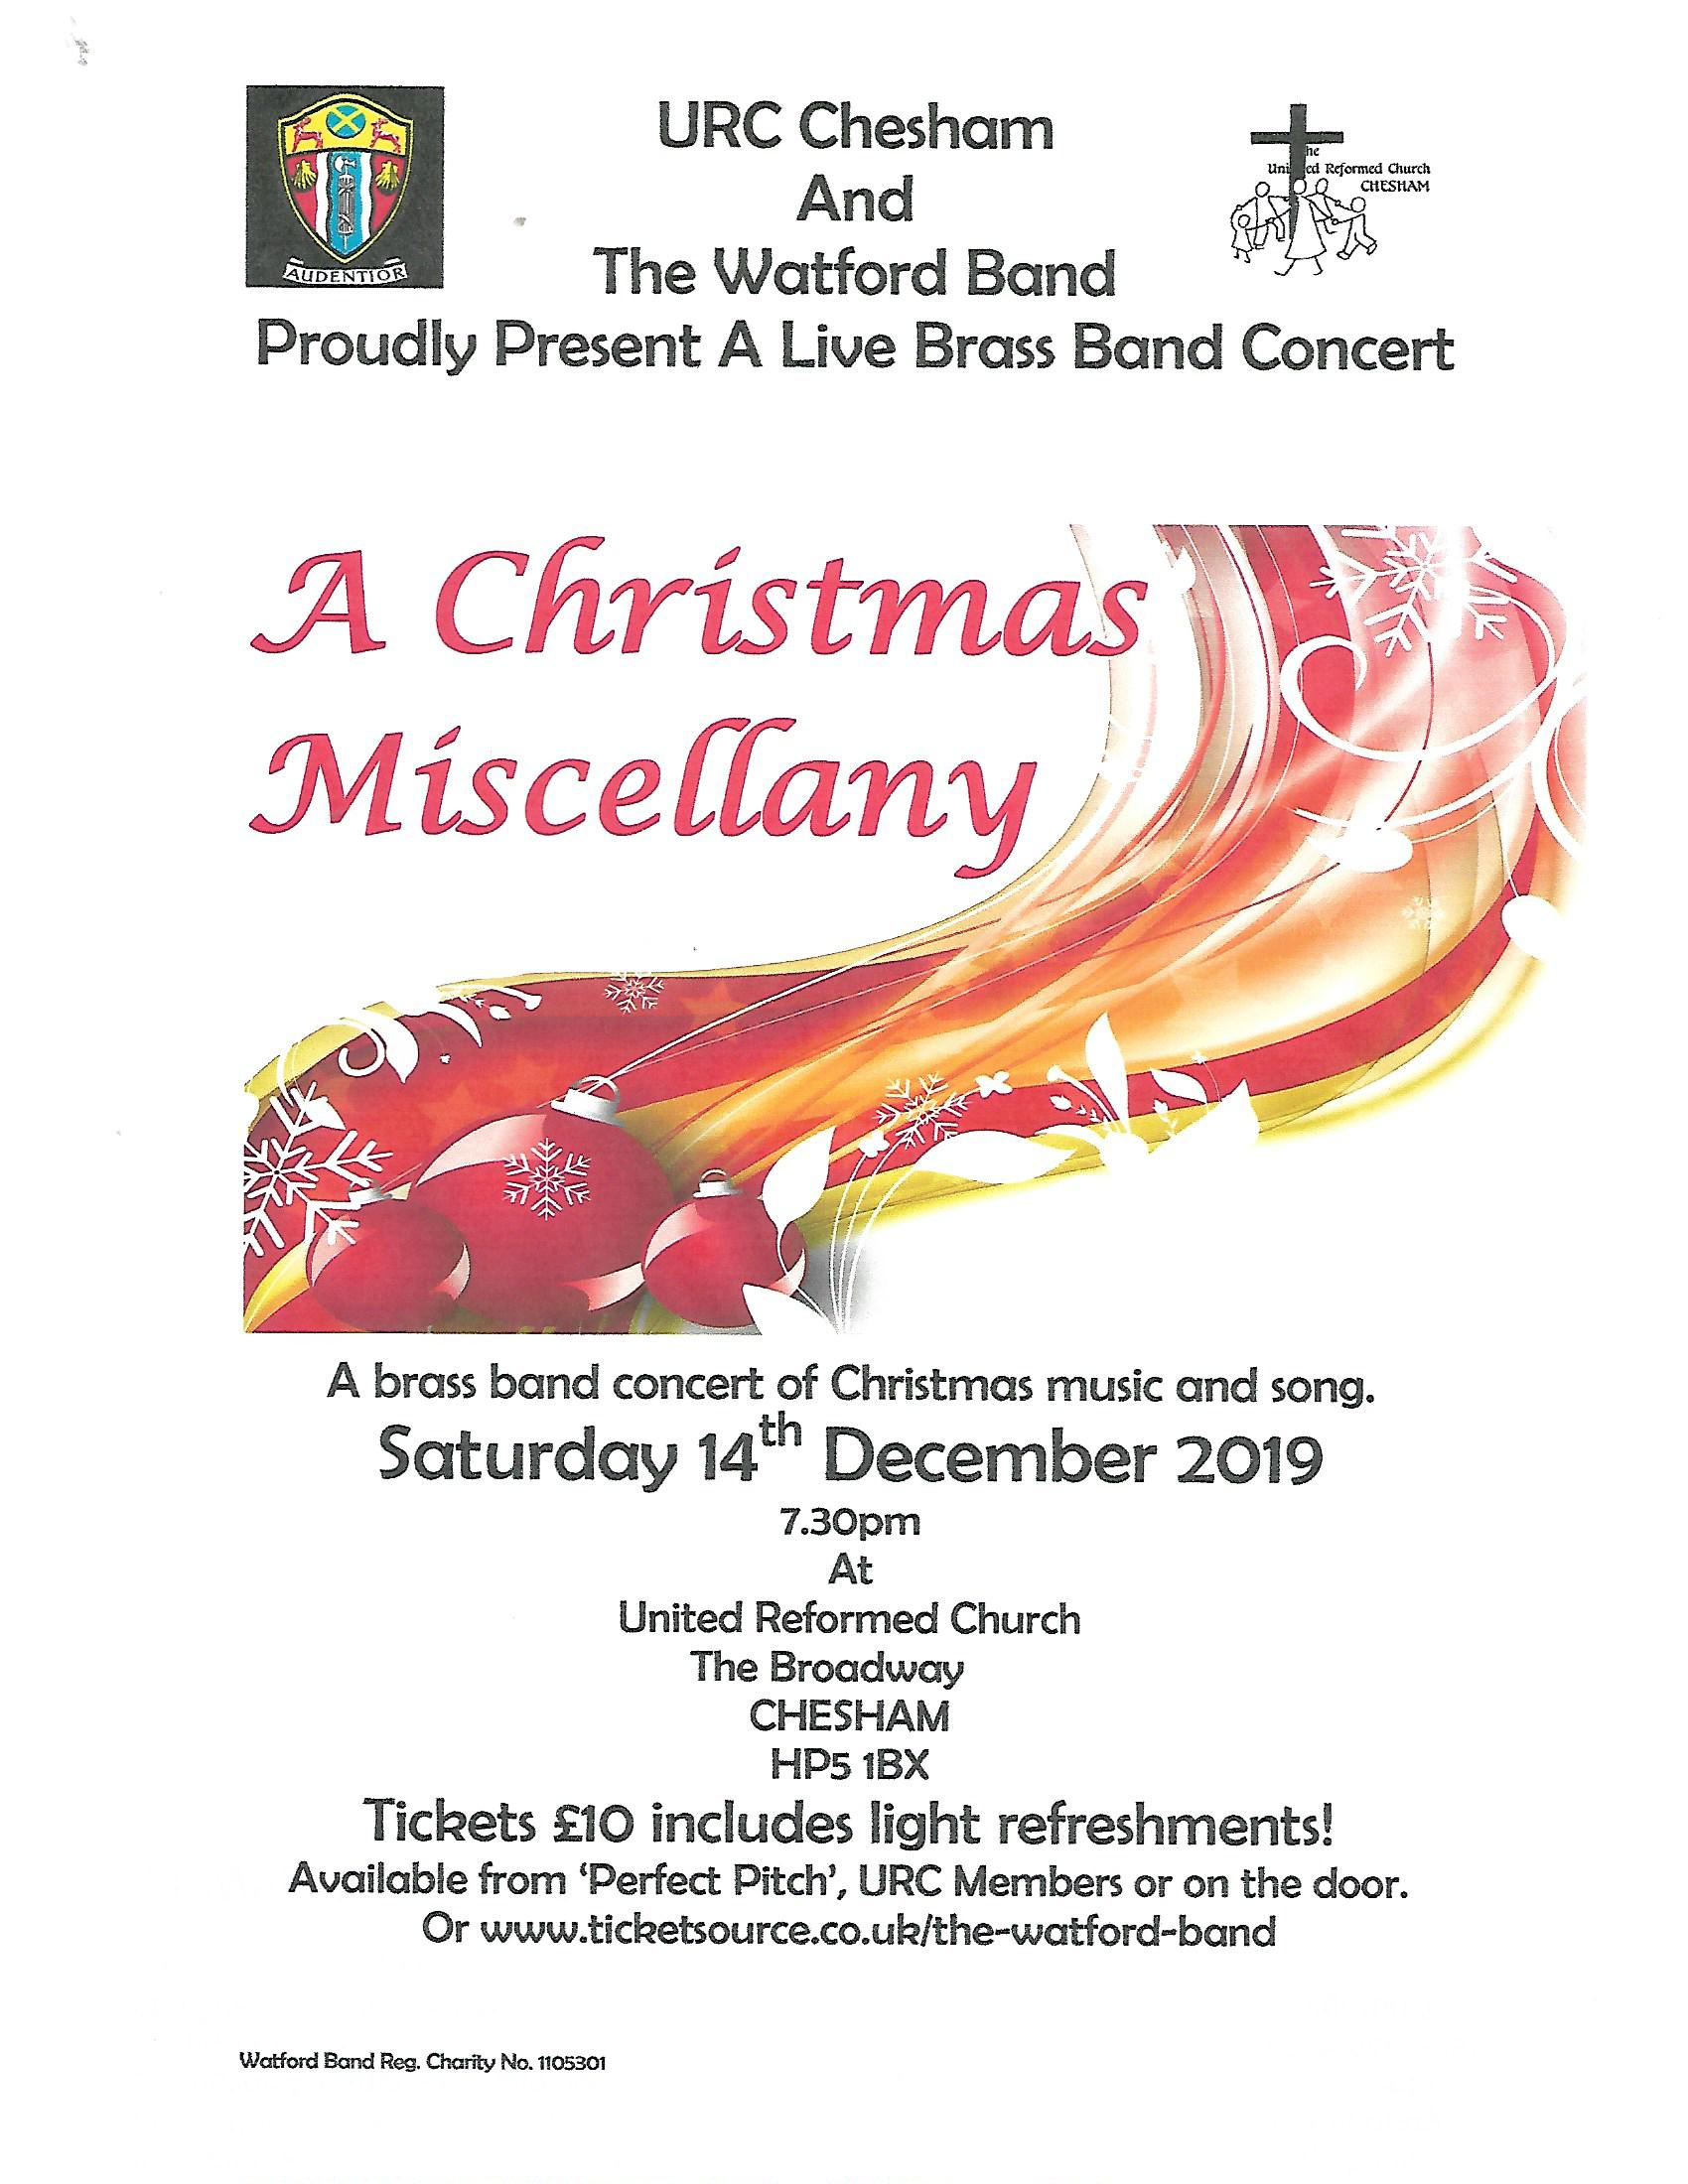 'A Christmas Miscellany' Brass Band Concert